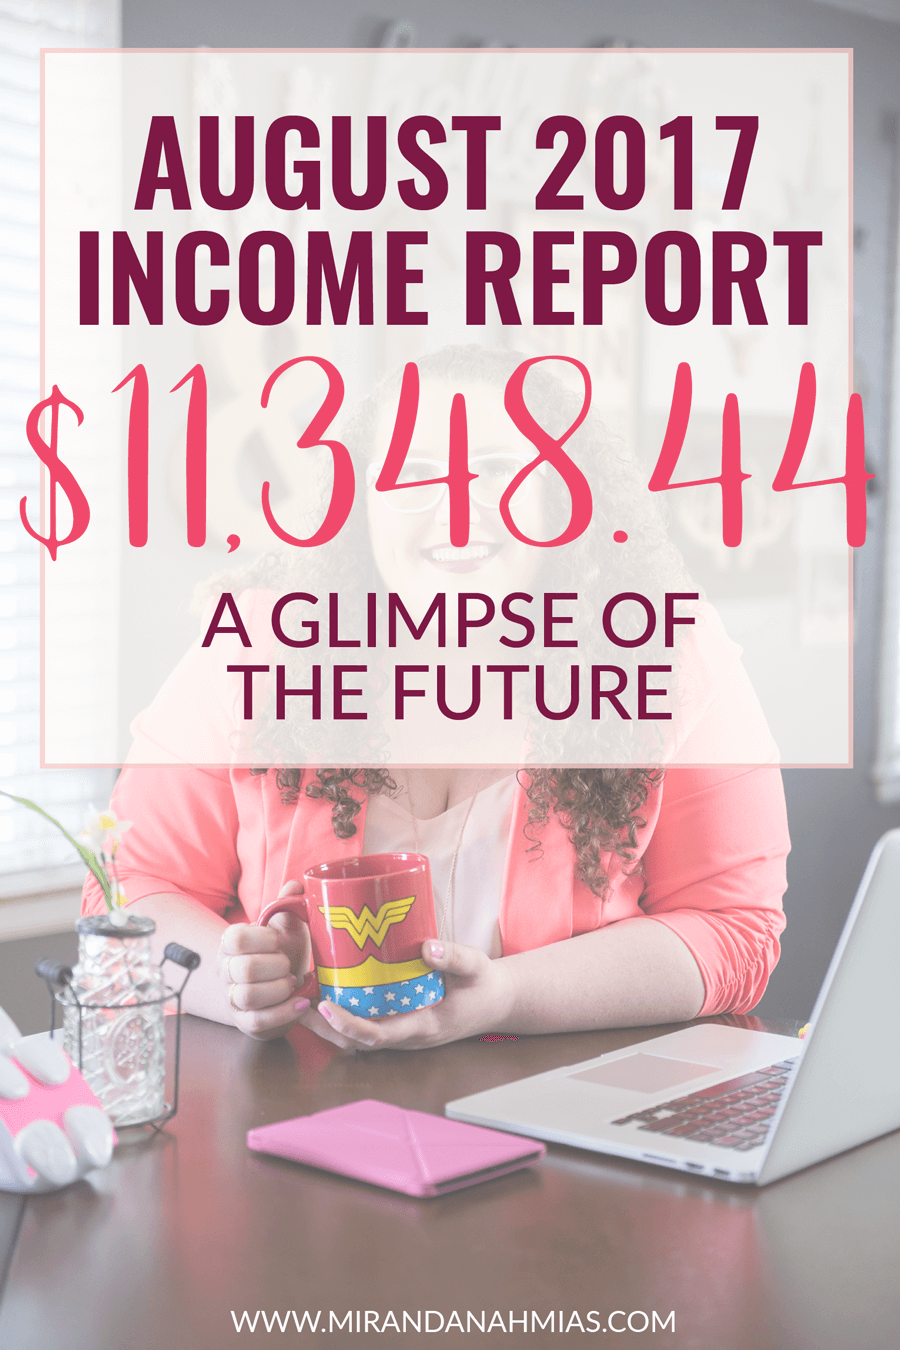 Things are looking up for Miranda Nahmias & Co! Check out my August 2017 Income Report | Miranda Nahmias & Co. Digital Marketing + Virtual Assistance